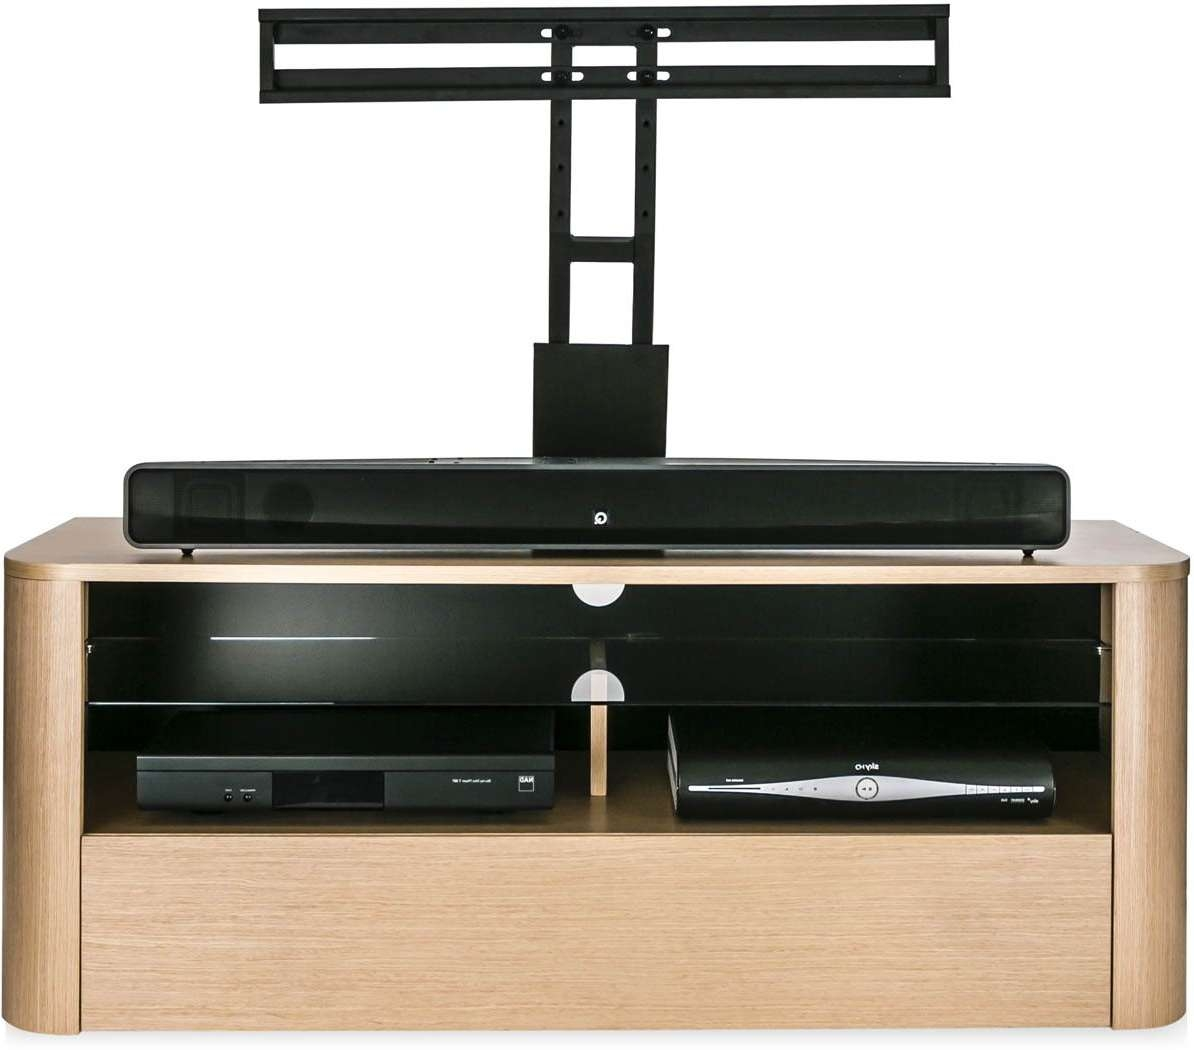 Alphason Adh1260 Lo+bkt Tv Stands Intended For Tv Stands Cantilever (View 10 of 15)